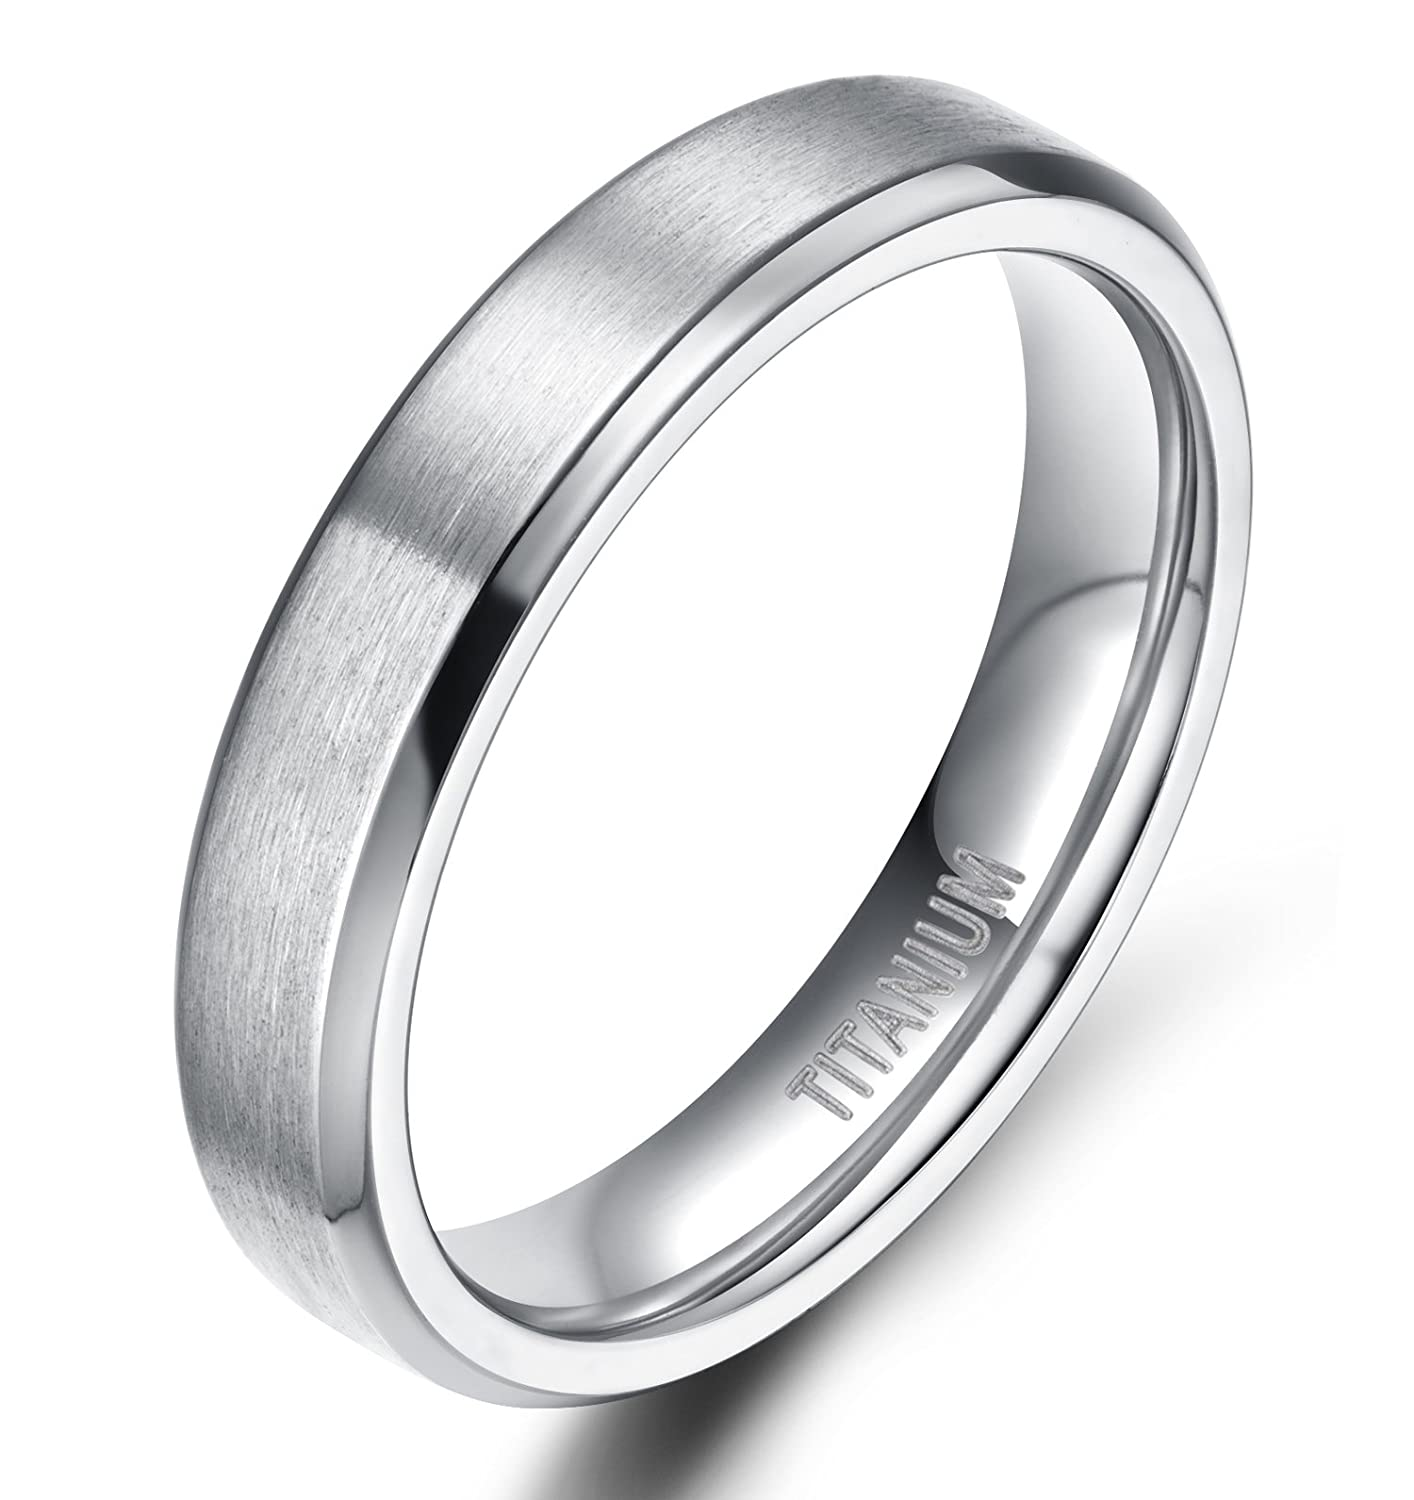 wedding band ring bands product infinity mens jewelry kinetic designs